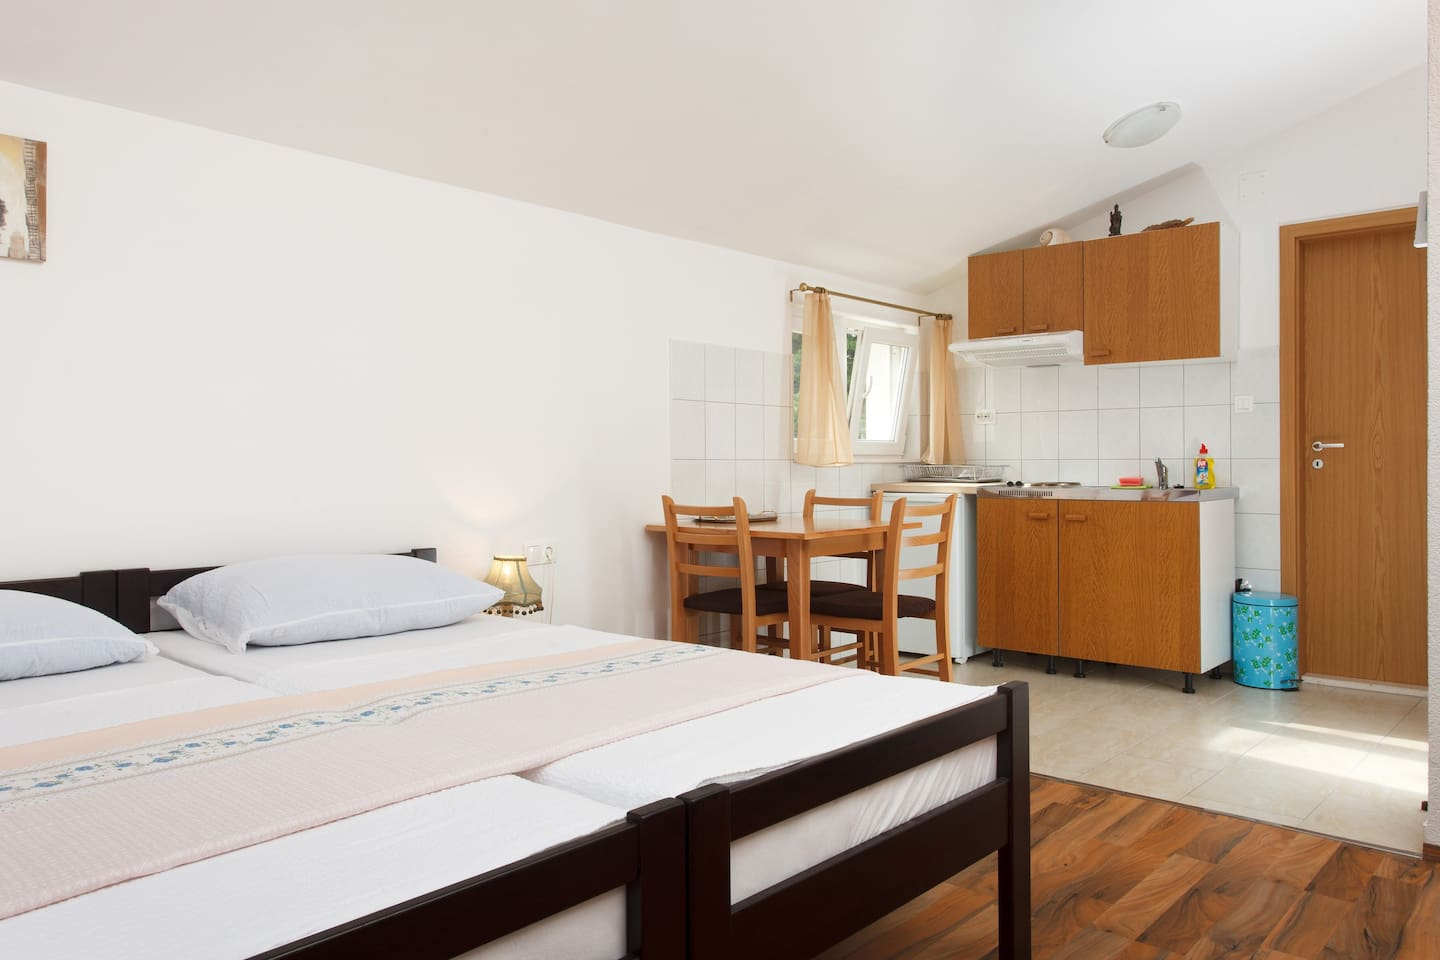 Two beds, small but fully equipped kitchenette